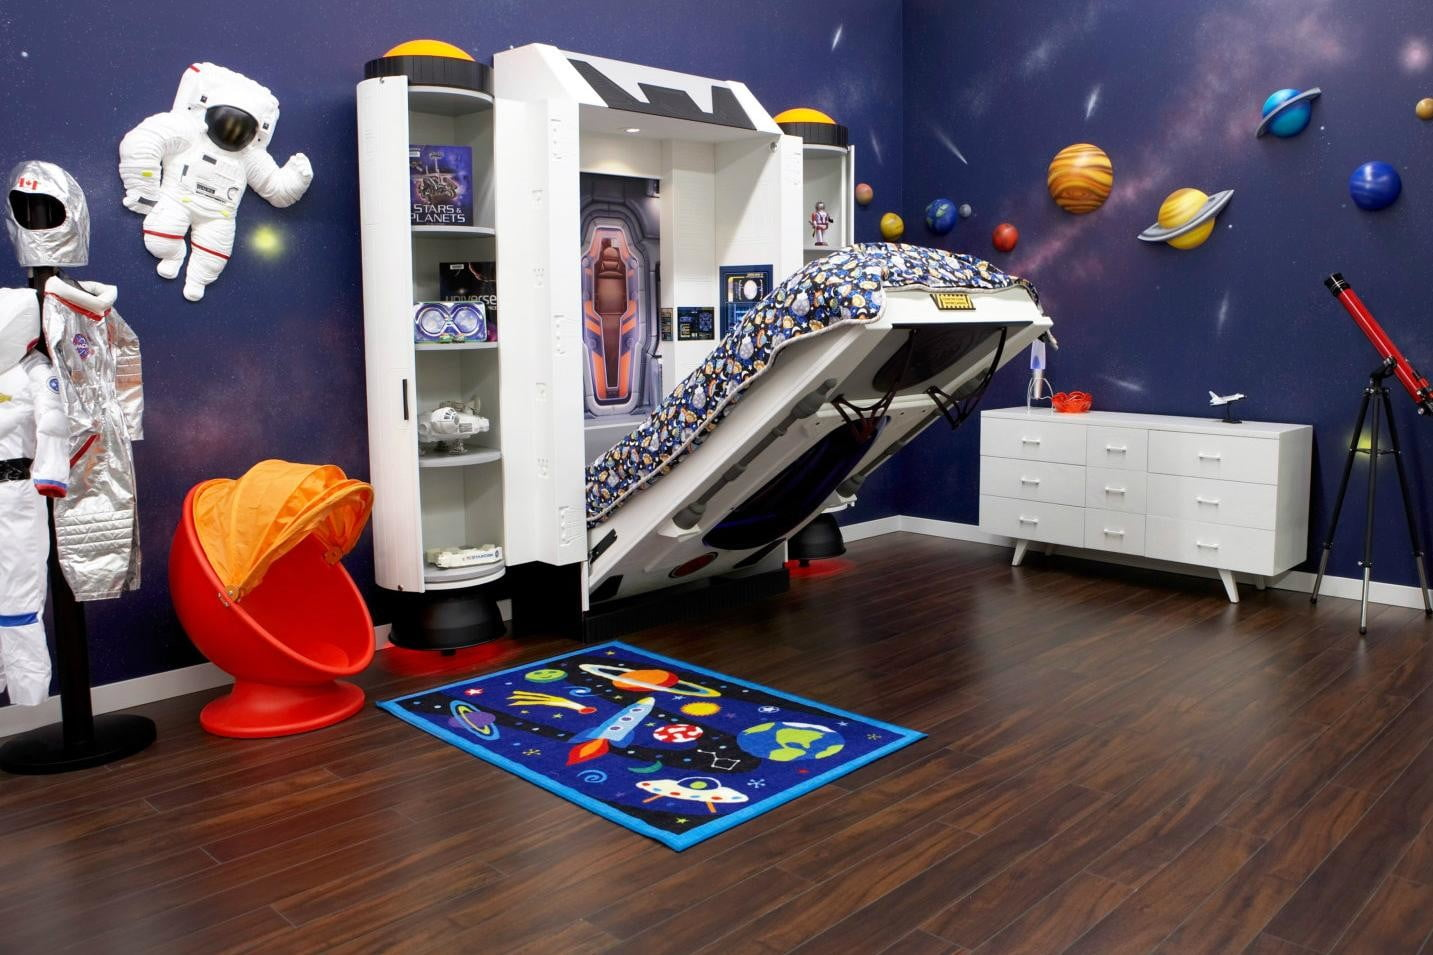 fable bedworks amazing kids beds cost more than a car etsy space bed